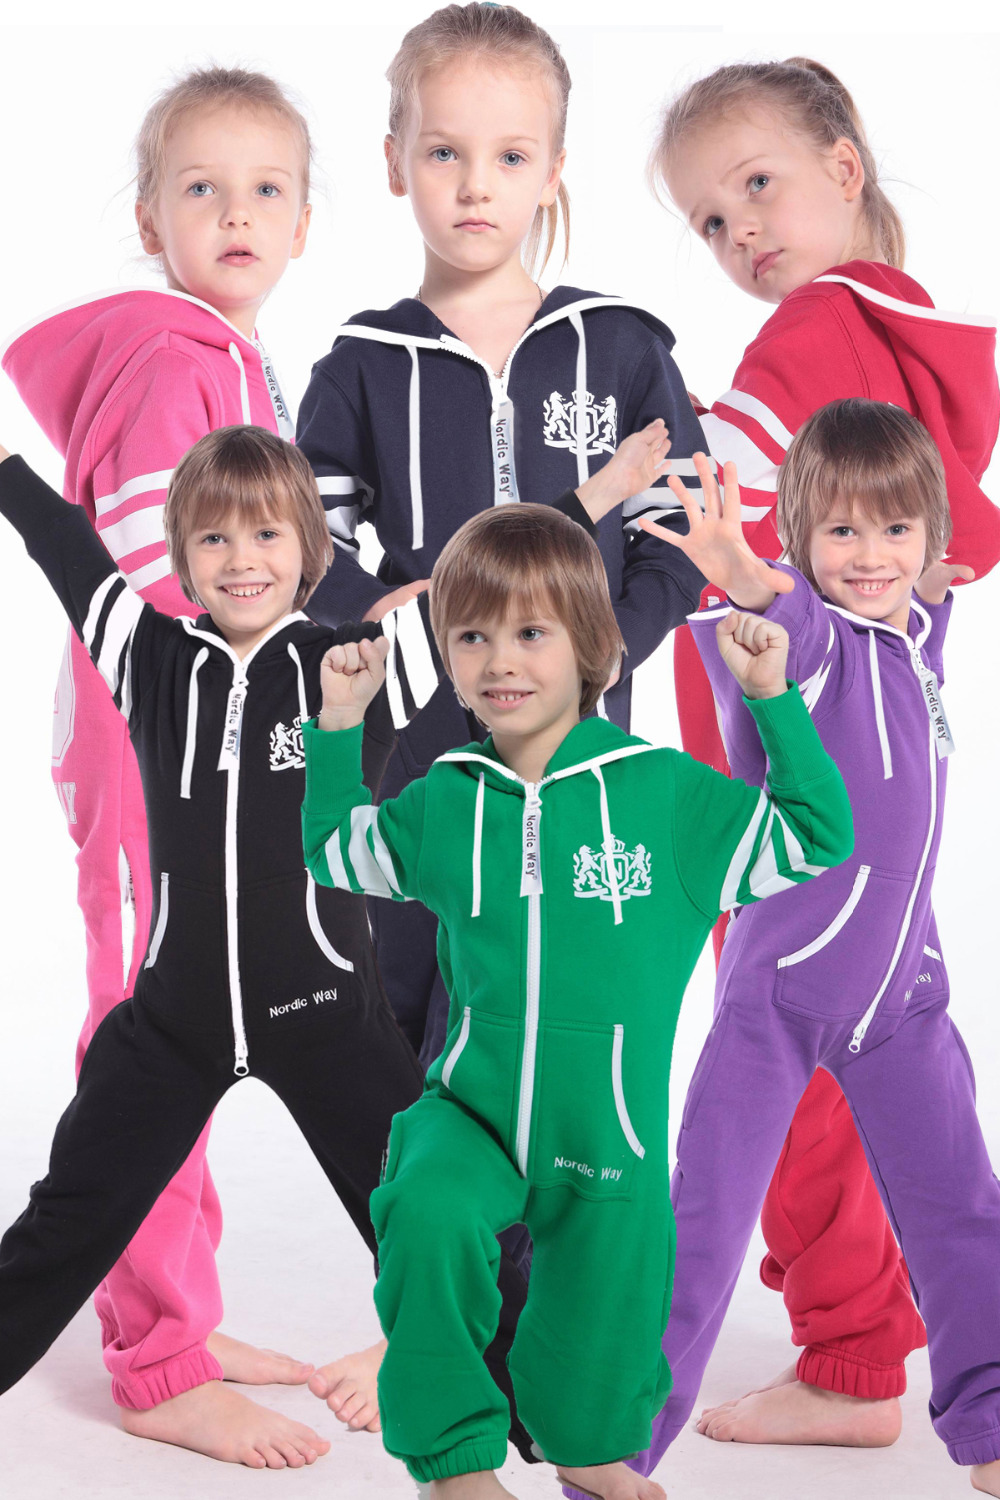 Nordic Way Printed One Piece Jumpusit All In One Fashion Kids Romper Hoody Fleece Overall